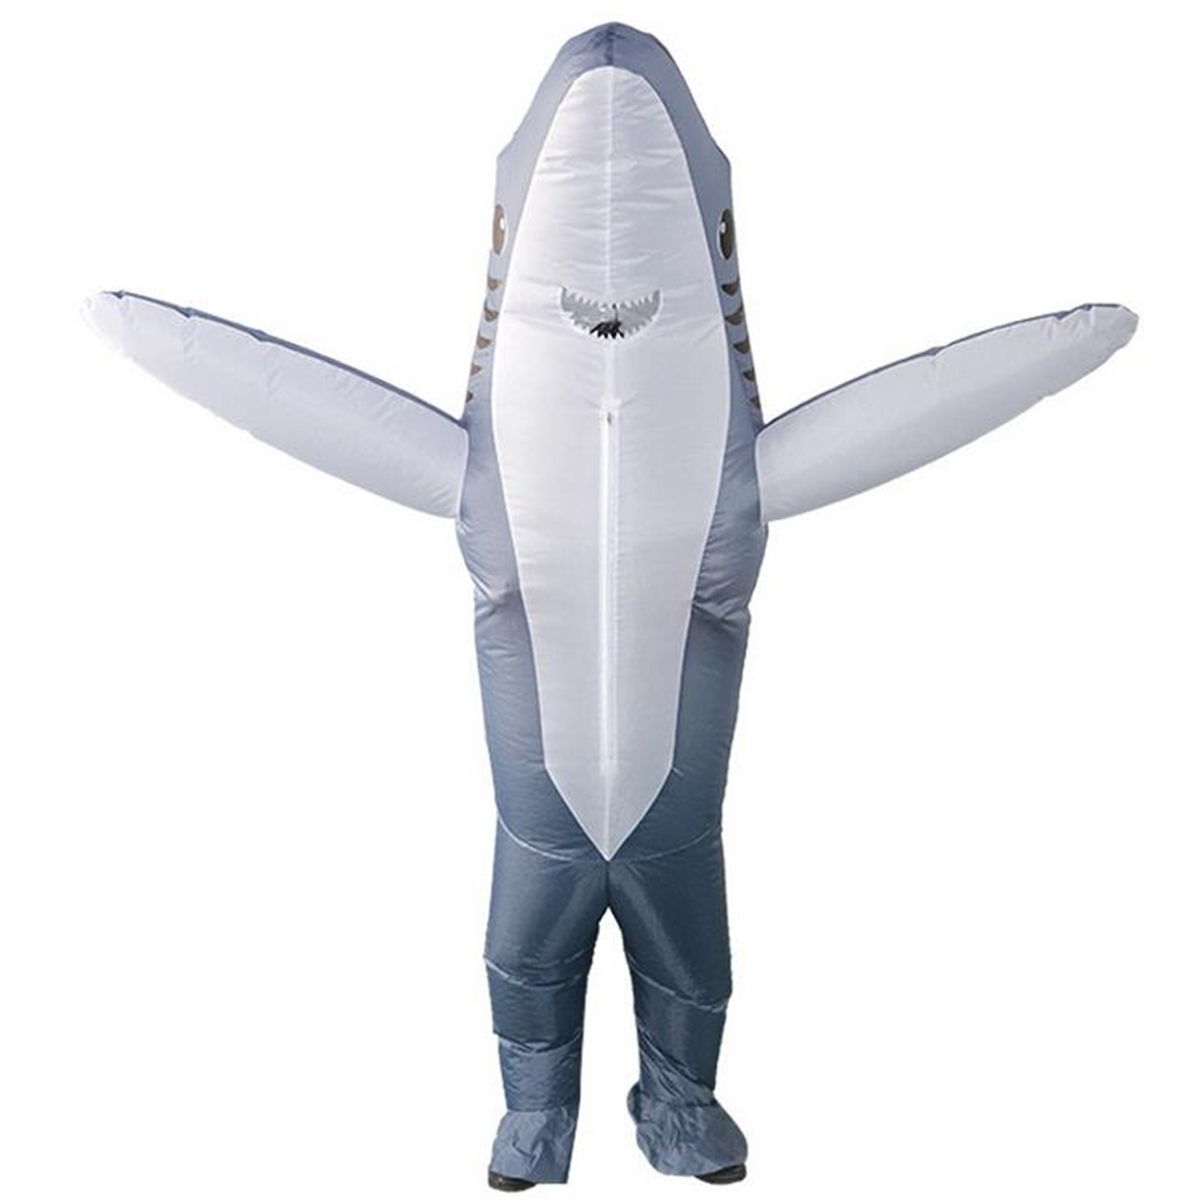 Inflatable Costumes Shark Adult Halloween Fancy Dress Funny Scary Dress Costume